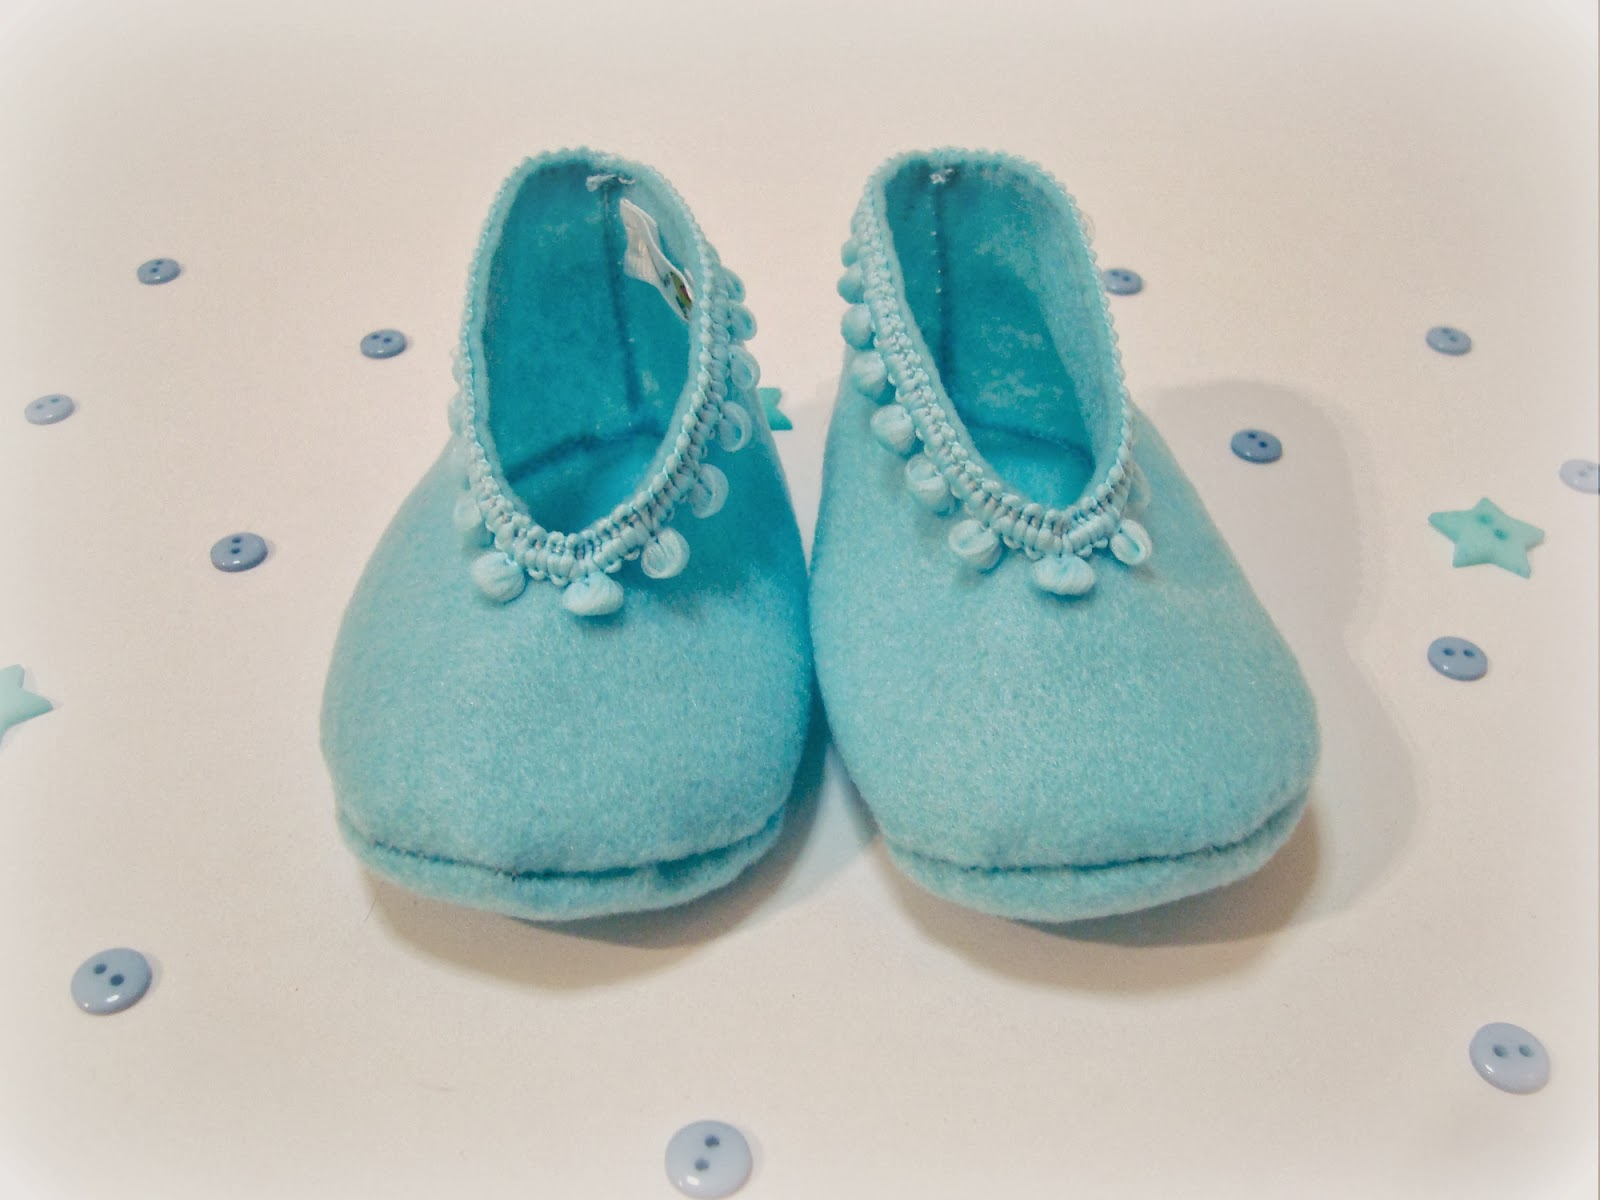 http://bonitoservico-bs.blogspot.pt/2013/09/mini-sapatinhos-mini-shoes.html